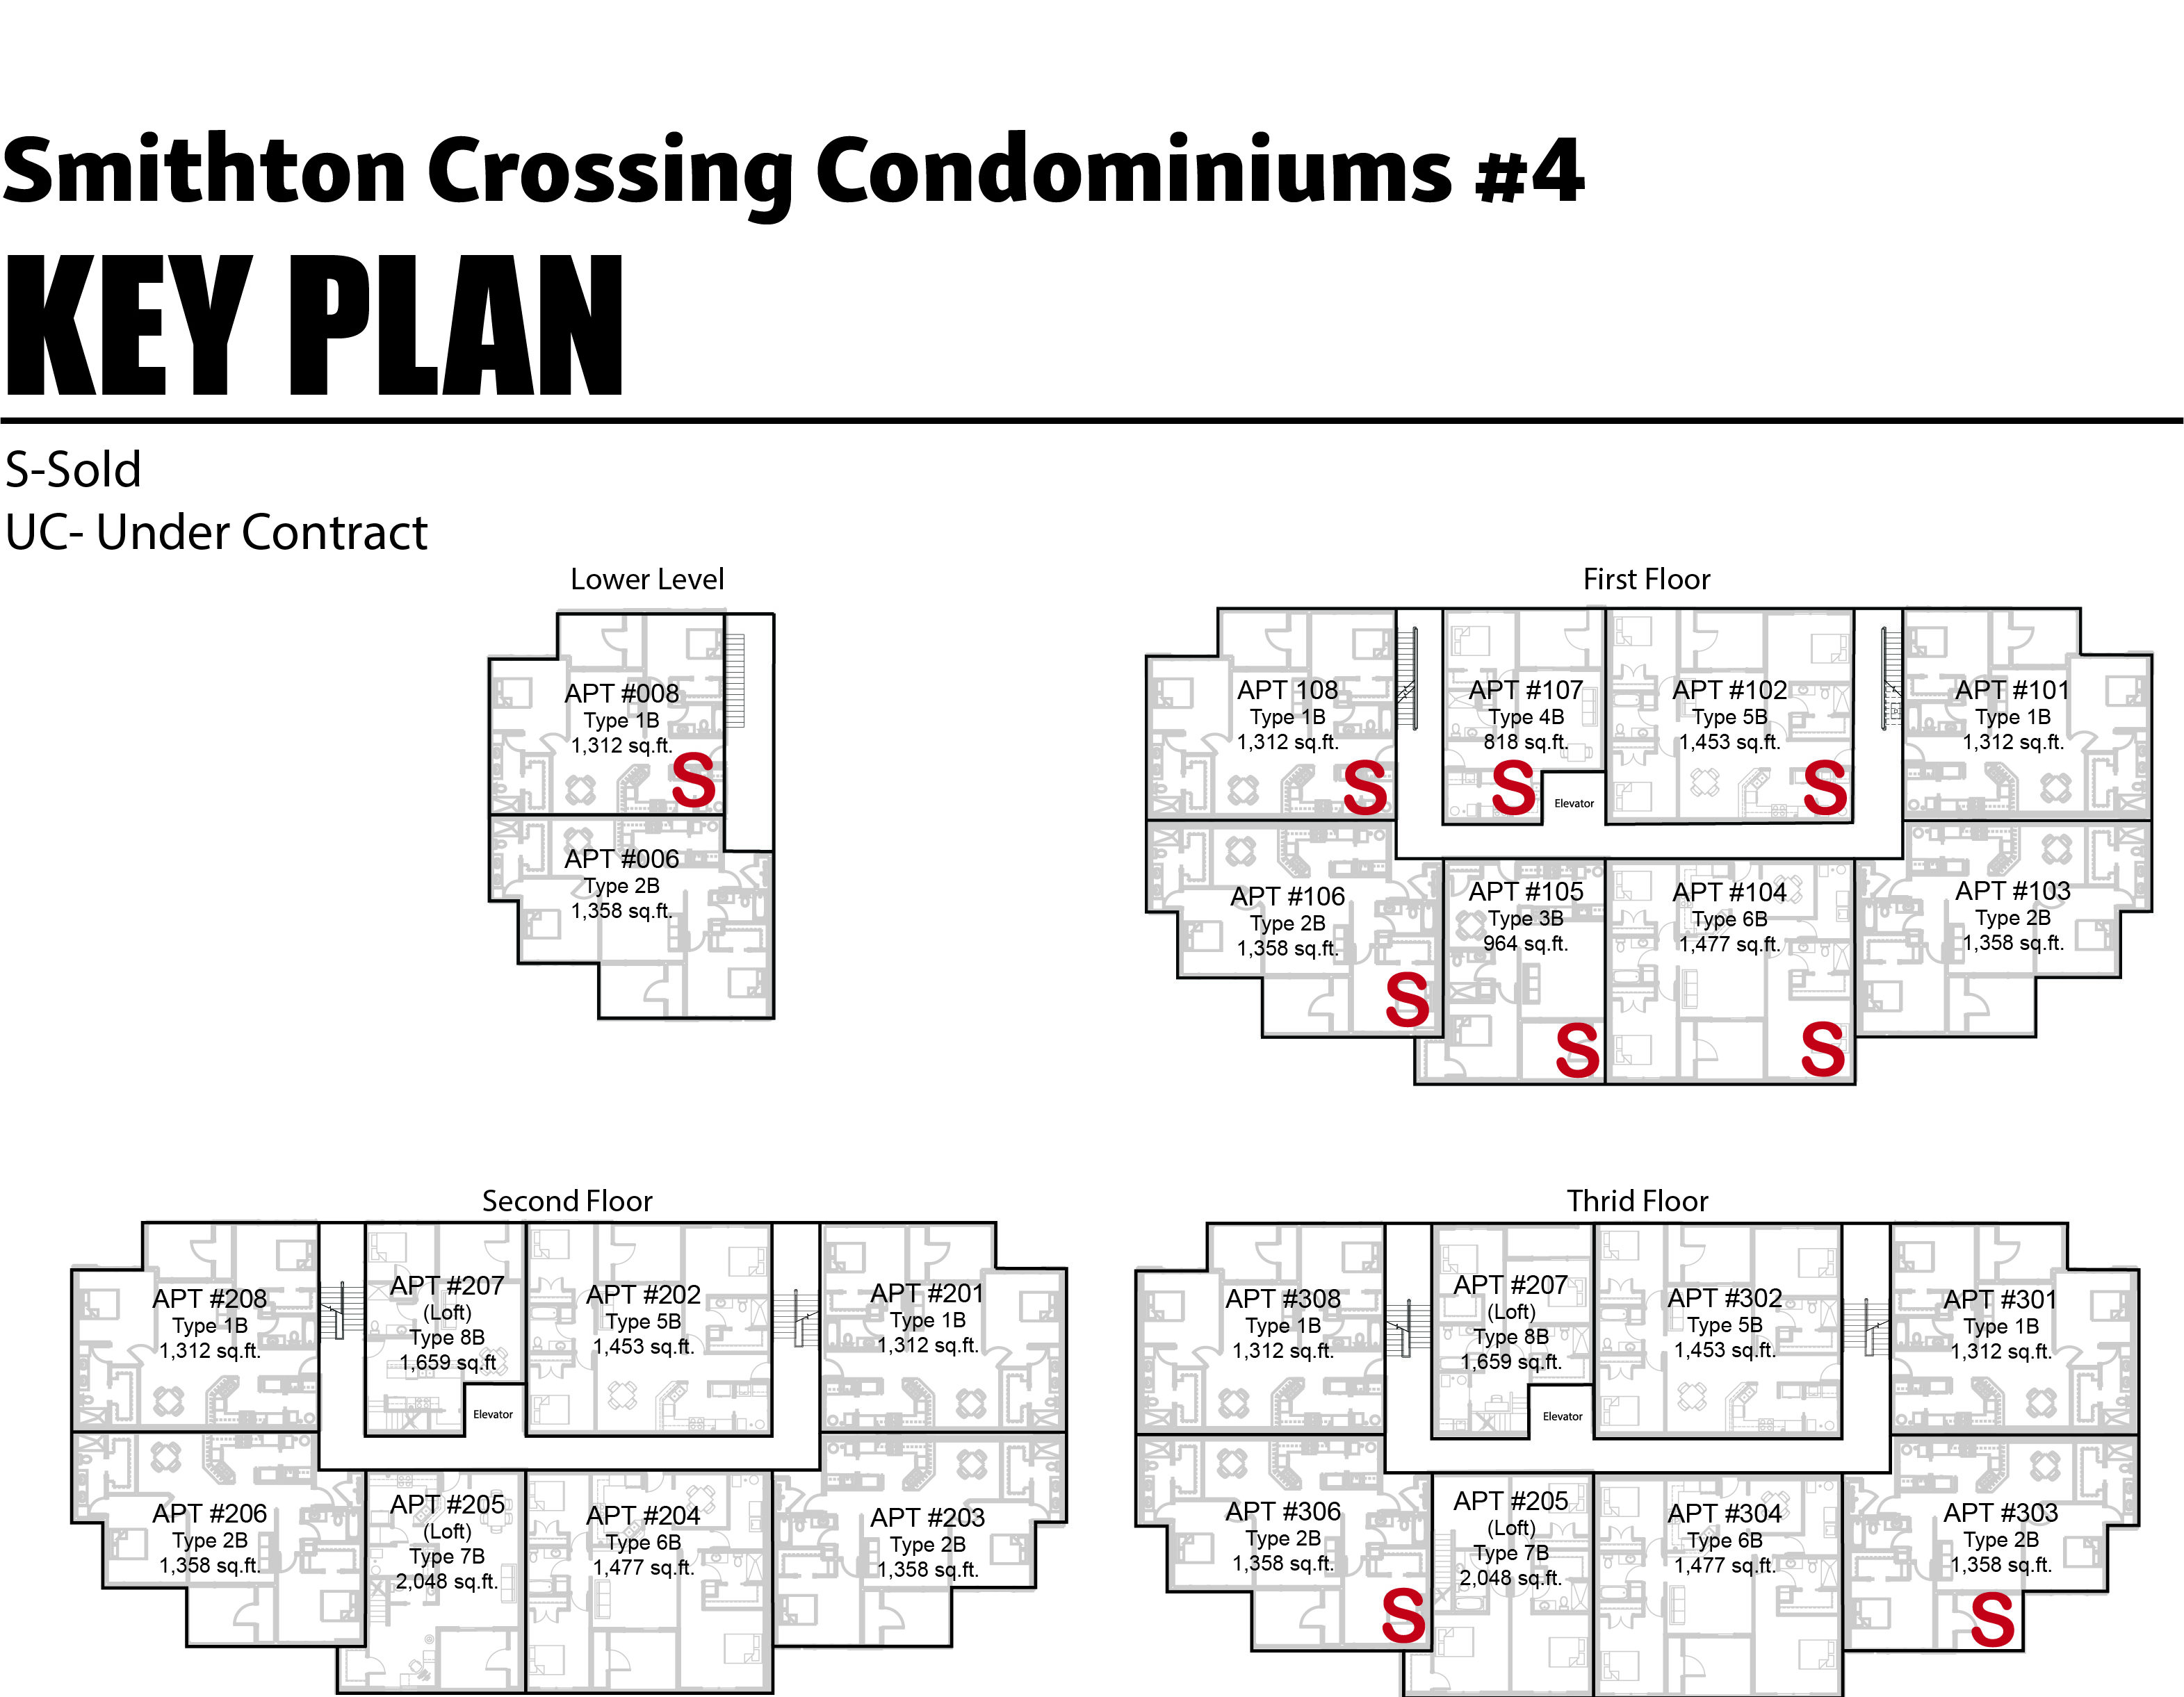 Smithton Crossing Condominiums